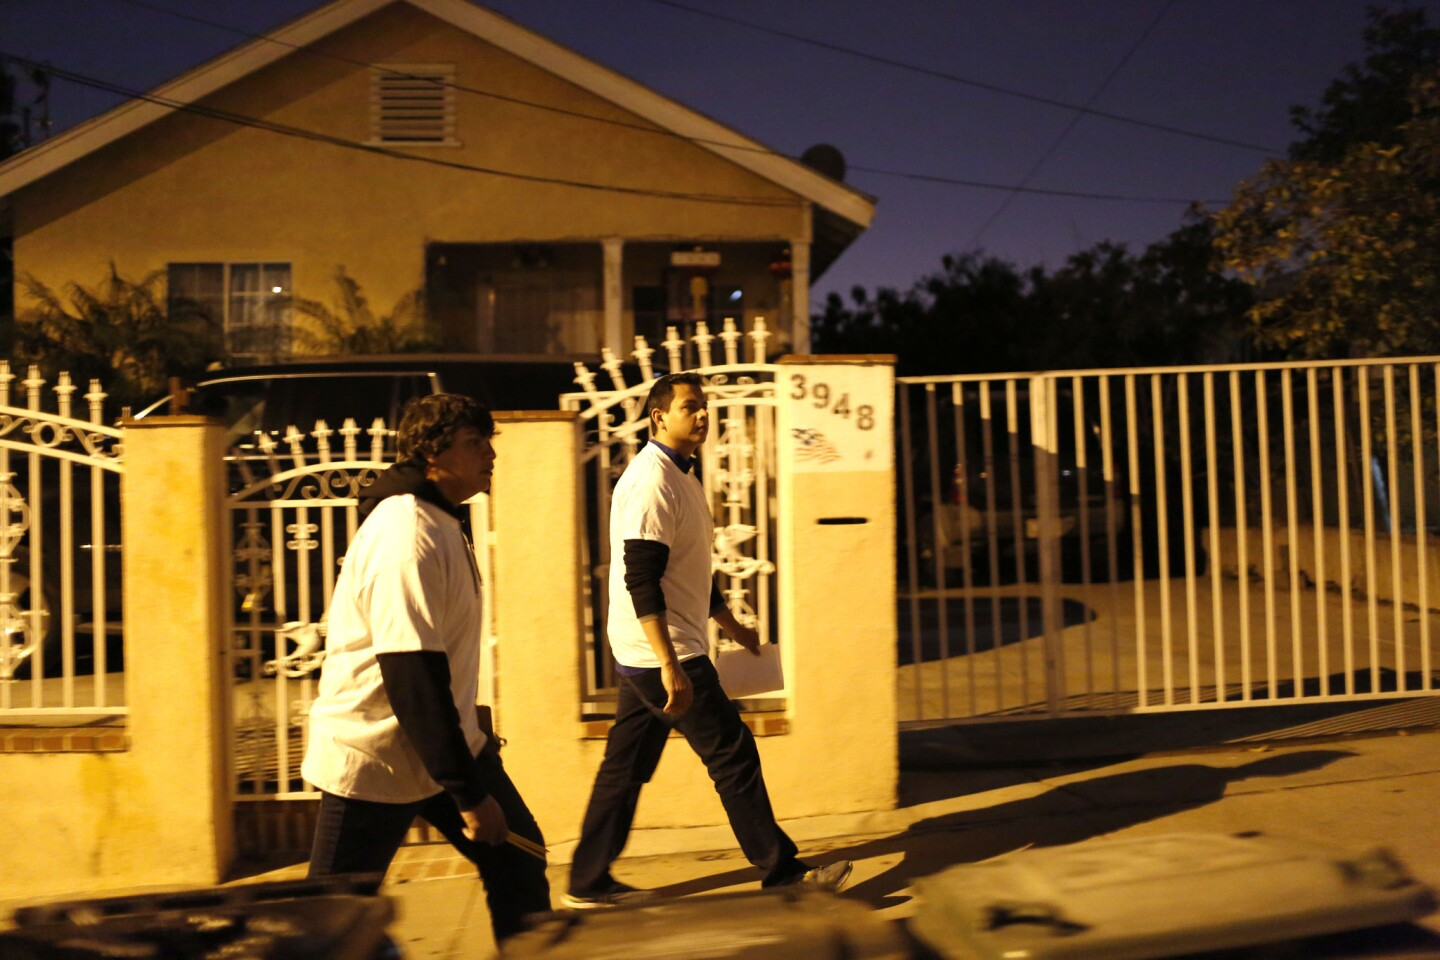 Benjamin Romero, 18, left, and his brother Omar, 32, survey neighborhoods near the 60 Freeway in East Los Angeles for homeless people as part of the Los Angeles Homeless Services Authority's 2016 homeless census.